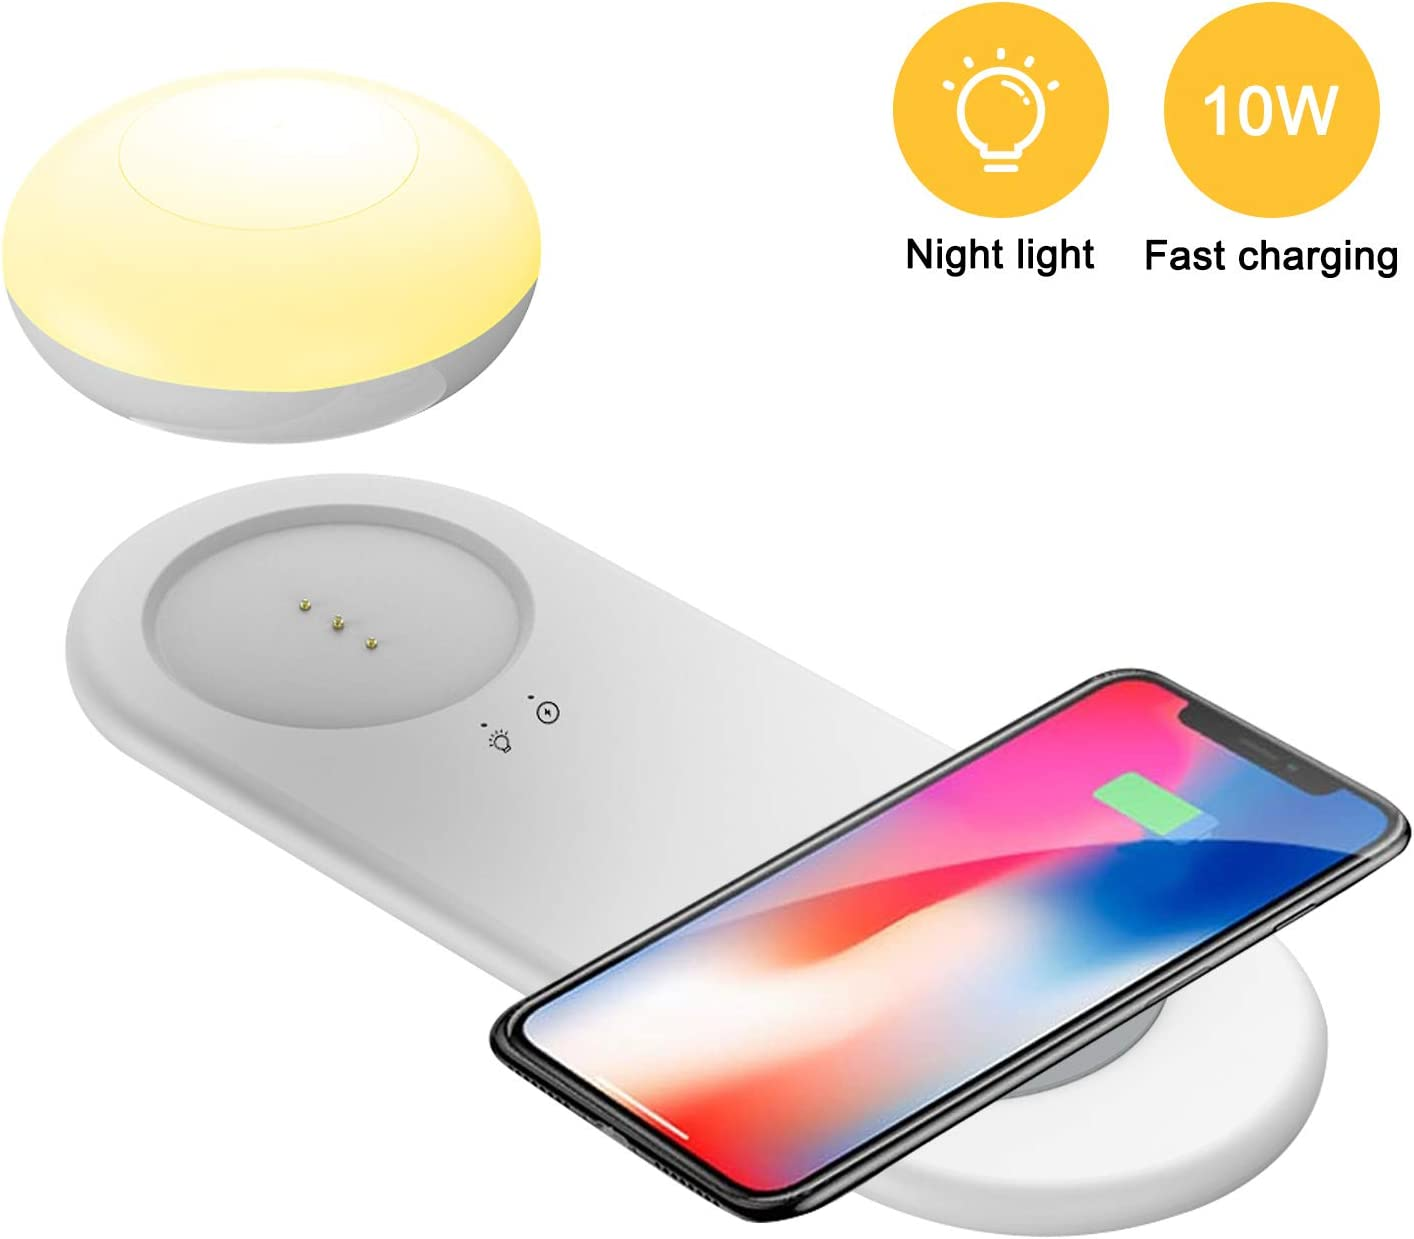 Qi-Certified 10W Fast Safe Wireless Phone Charging Pad with Eye Protection lamp Used for Bedroom Compatible with iPhone 11 Pro Max//XS Max Wireless Phone Charger with Night Light Galaxy Note Series